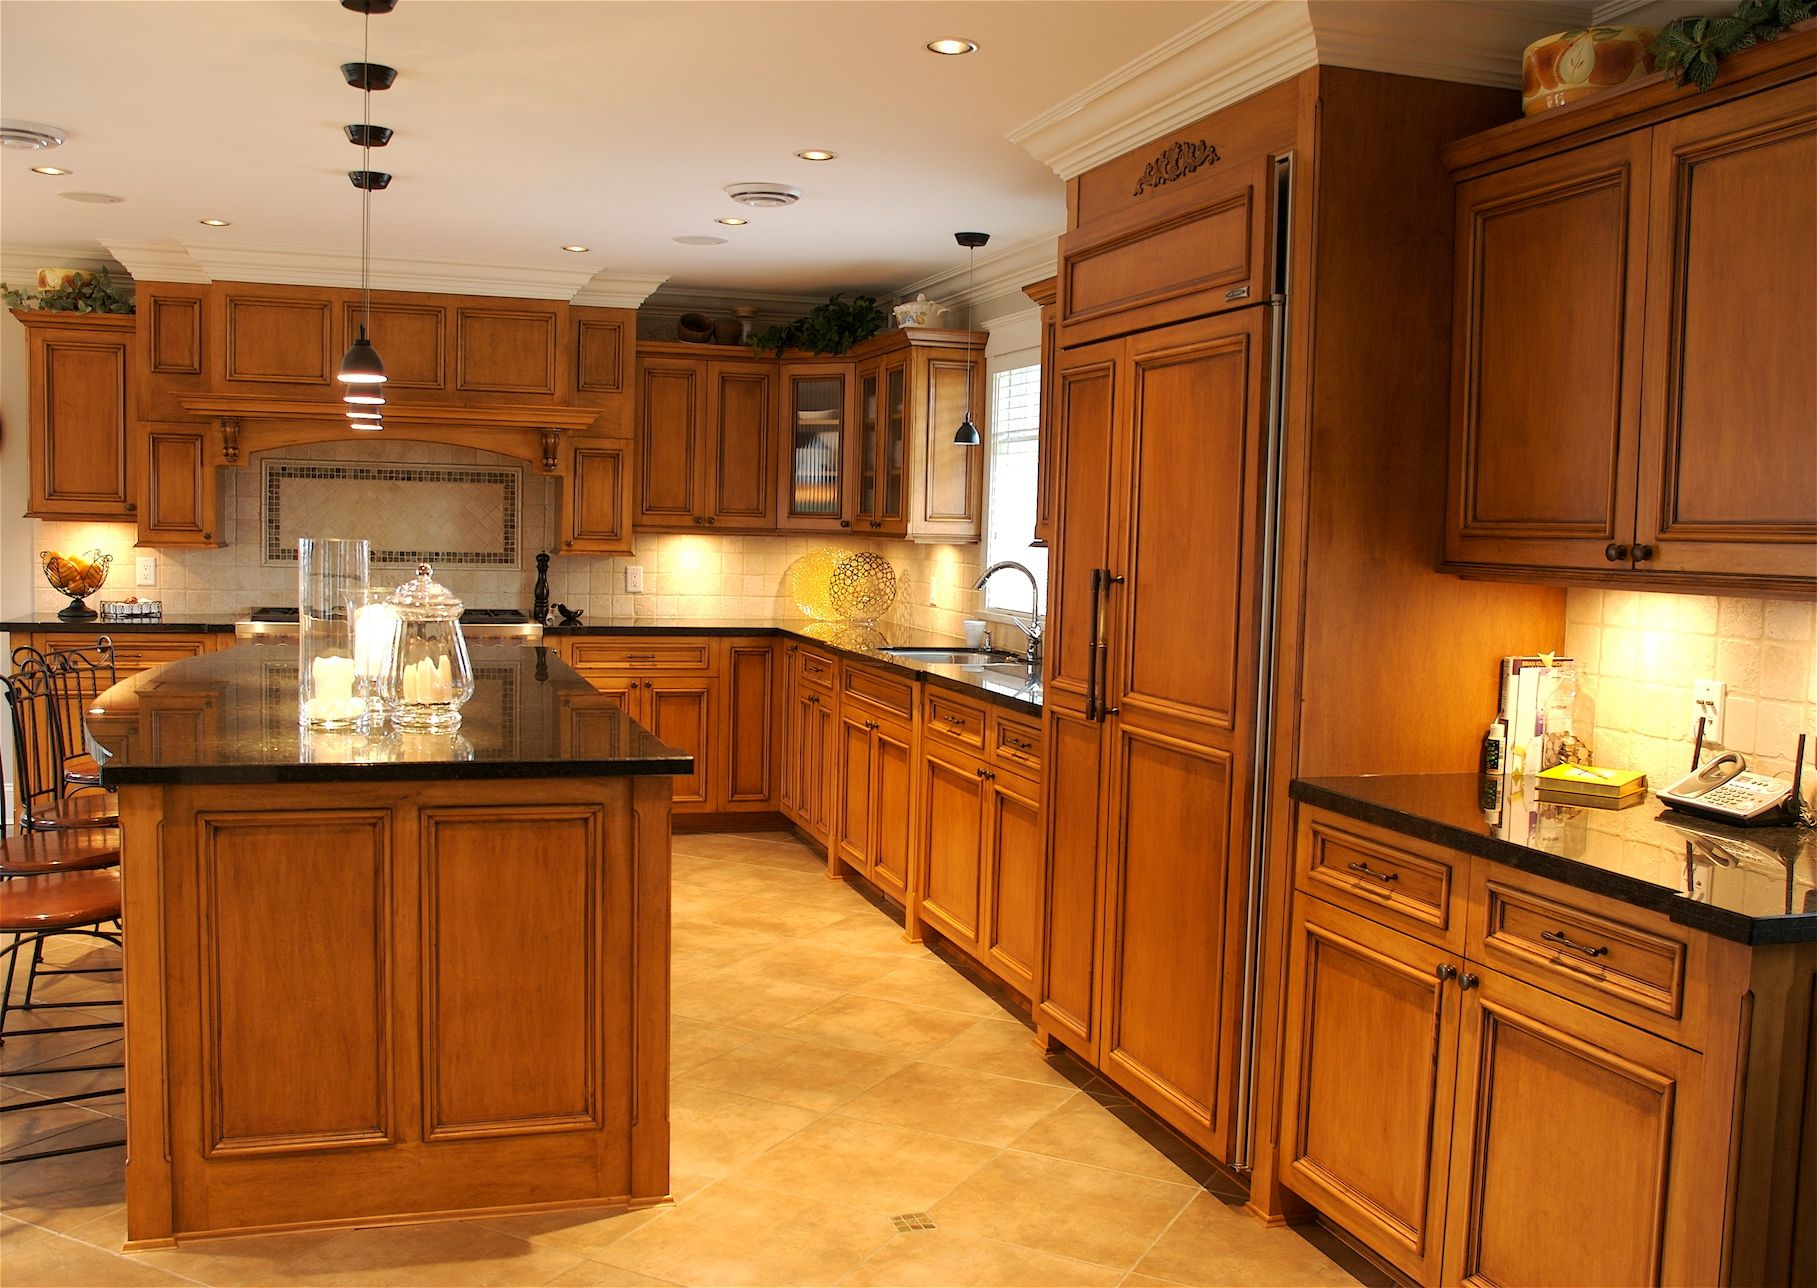 Maple cabinets with black countertop and light tile ... on Backsplash Maple Cabinets With Black Countertops  id=38167